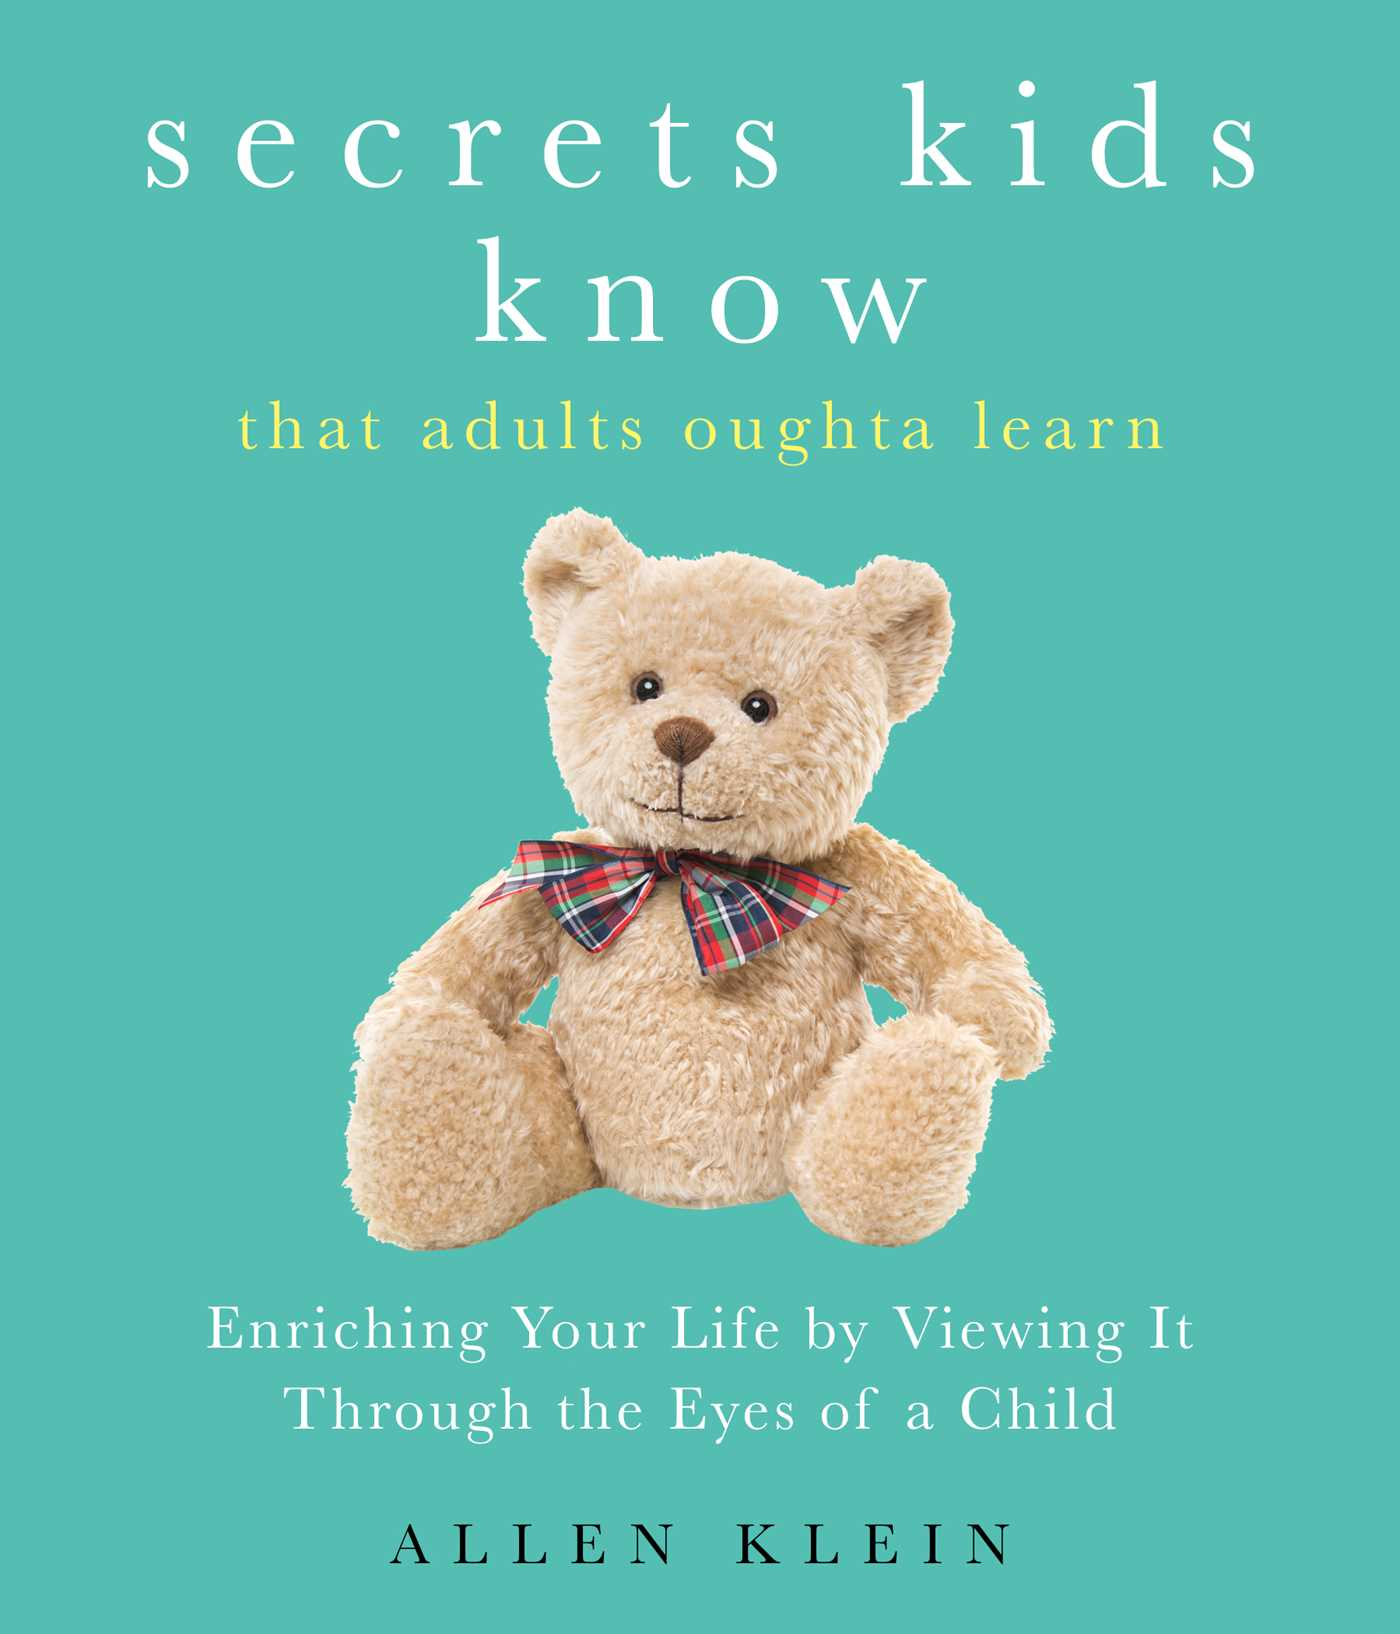 Secrets kids know that adults oughta learn 9781632280541 hr